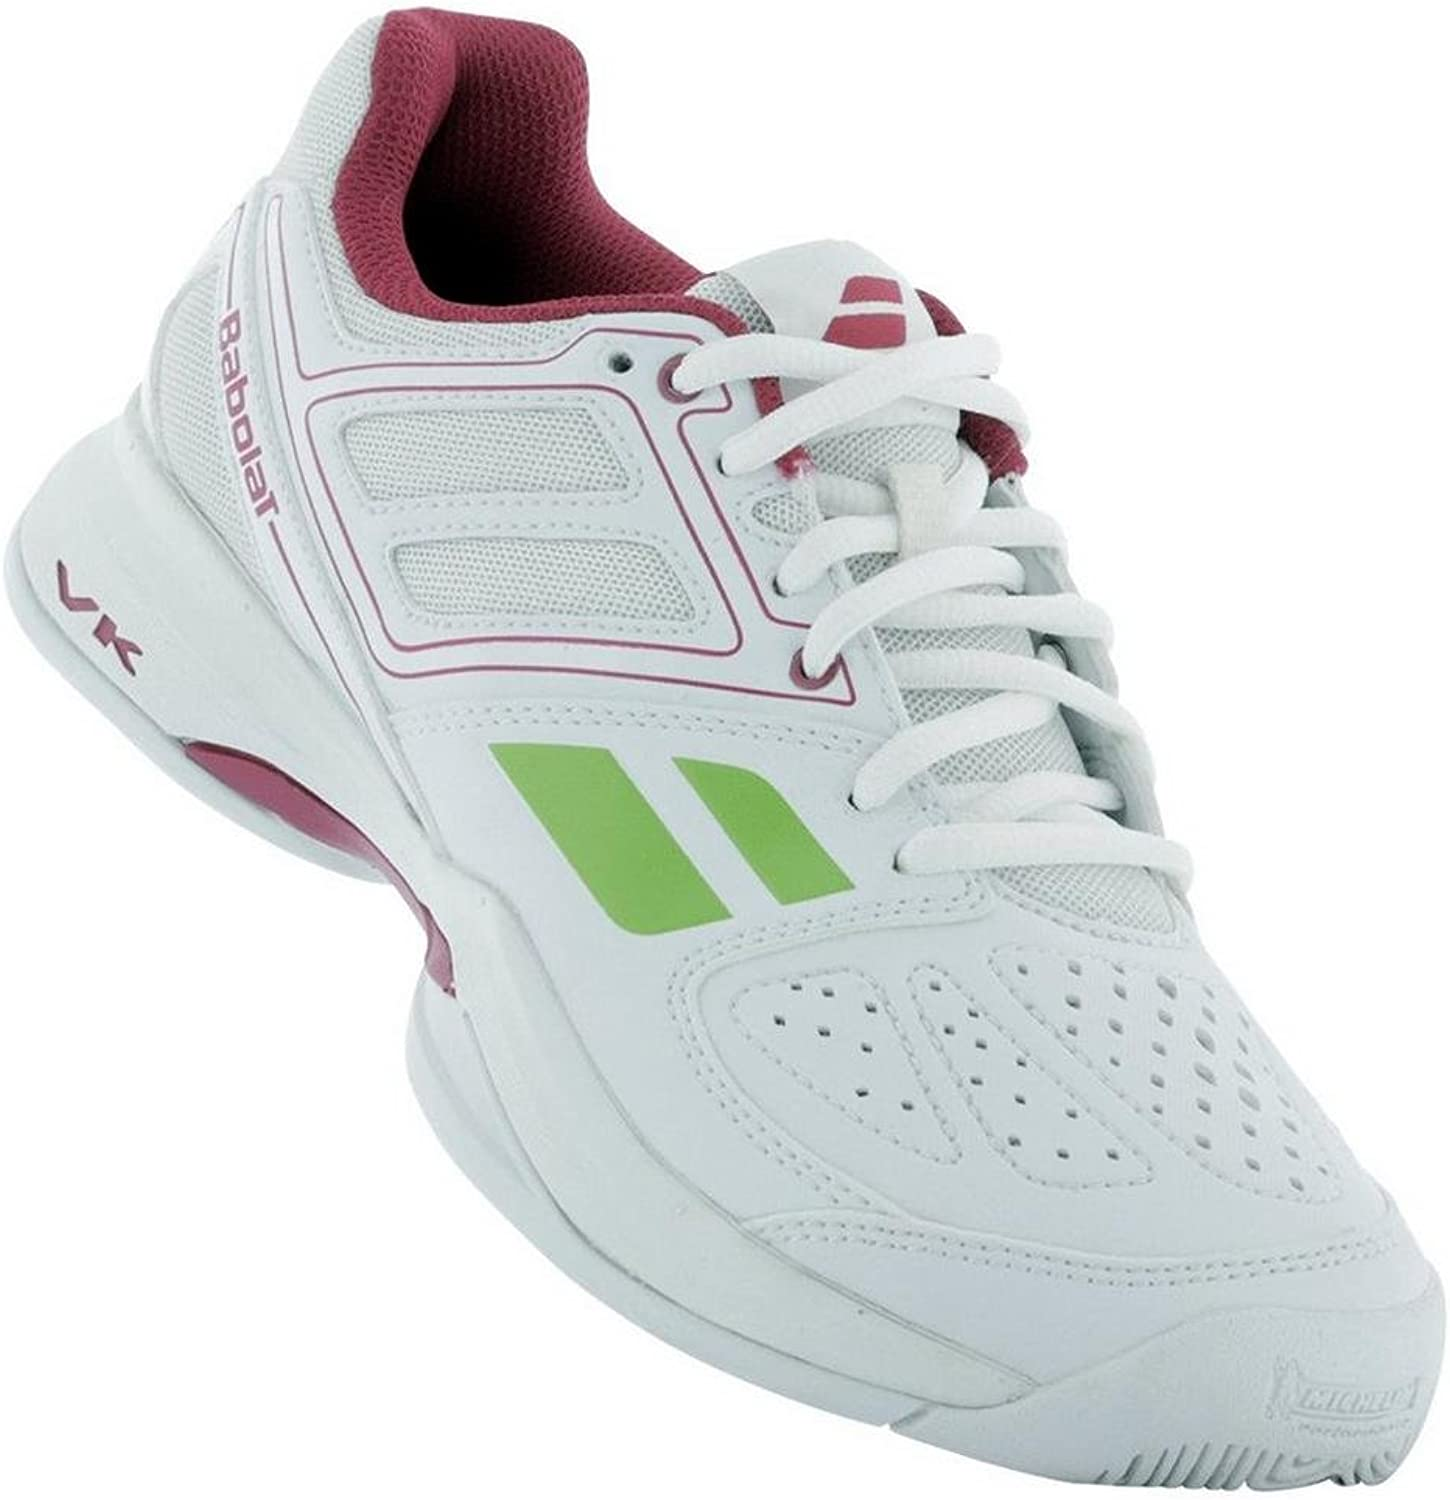 Babolat Pulsion Women's Tennis shoes White Pink